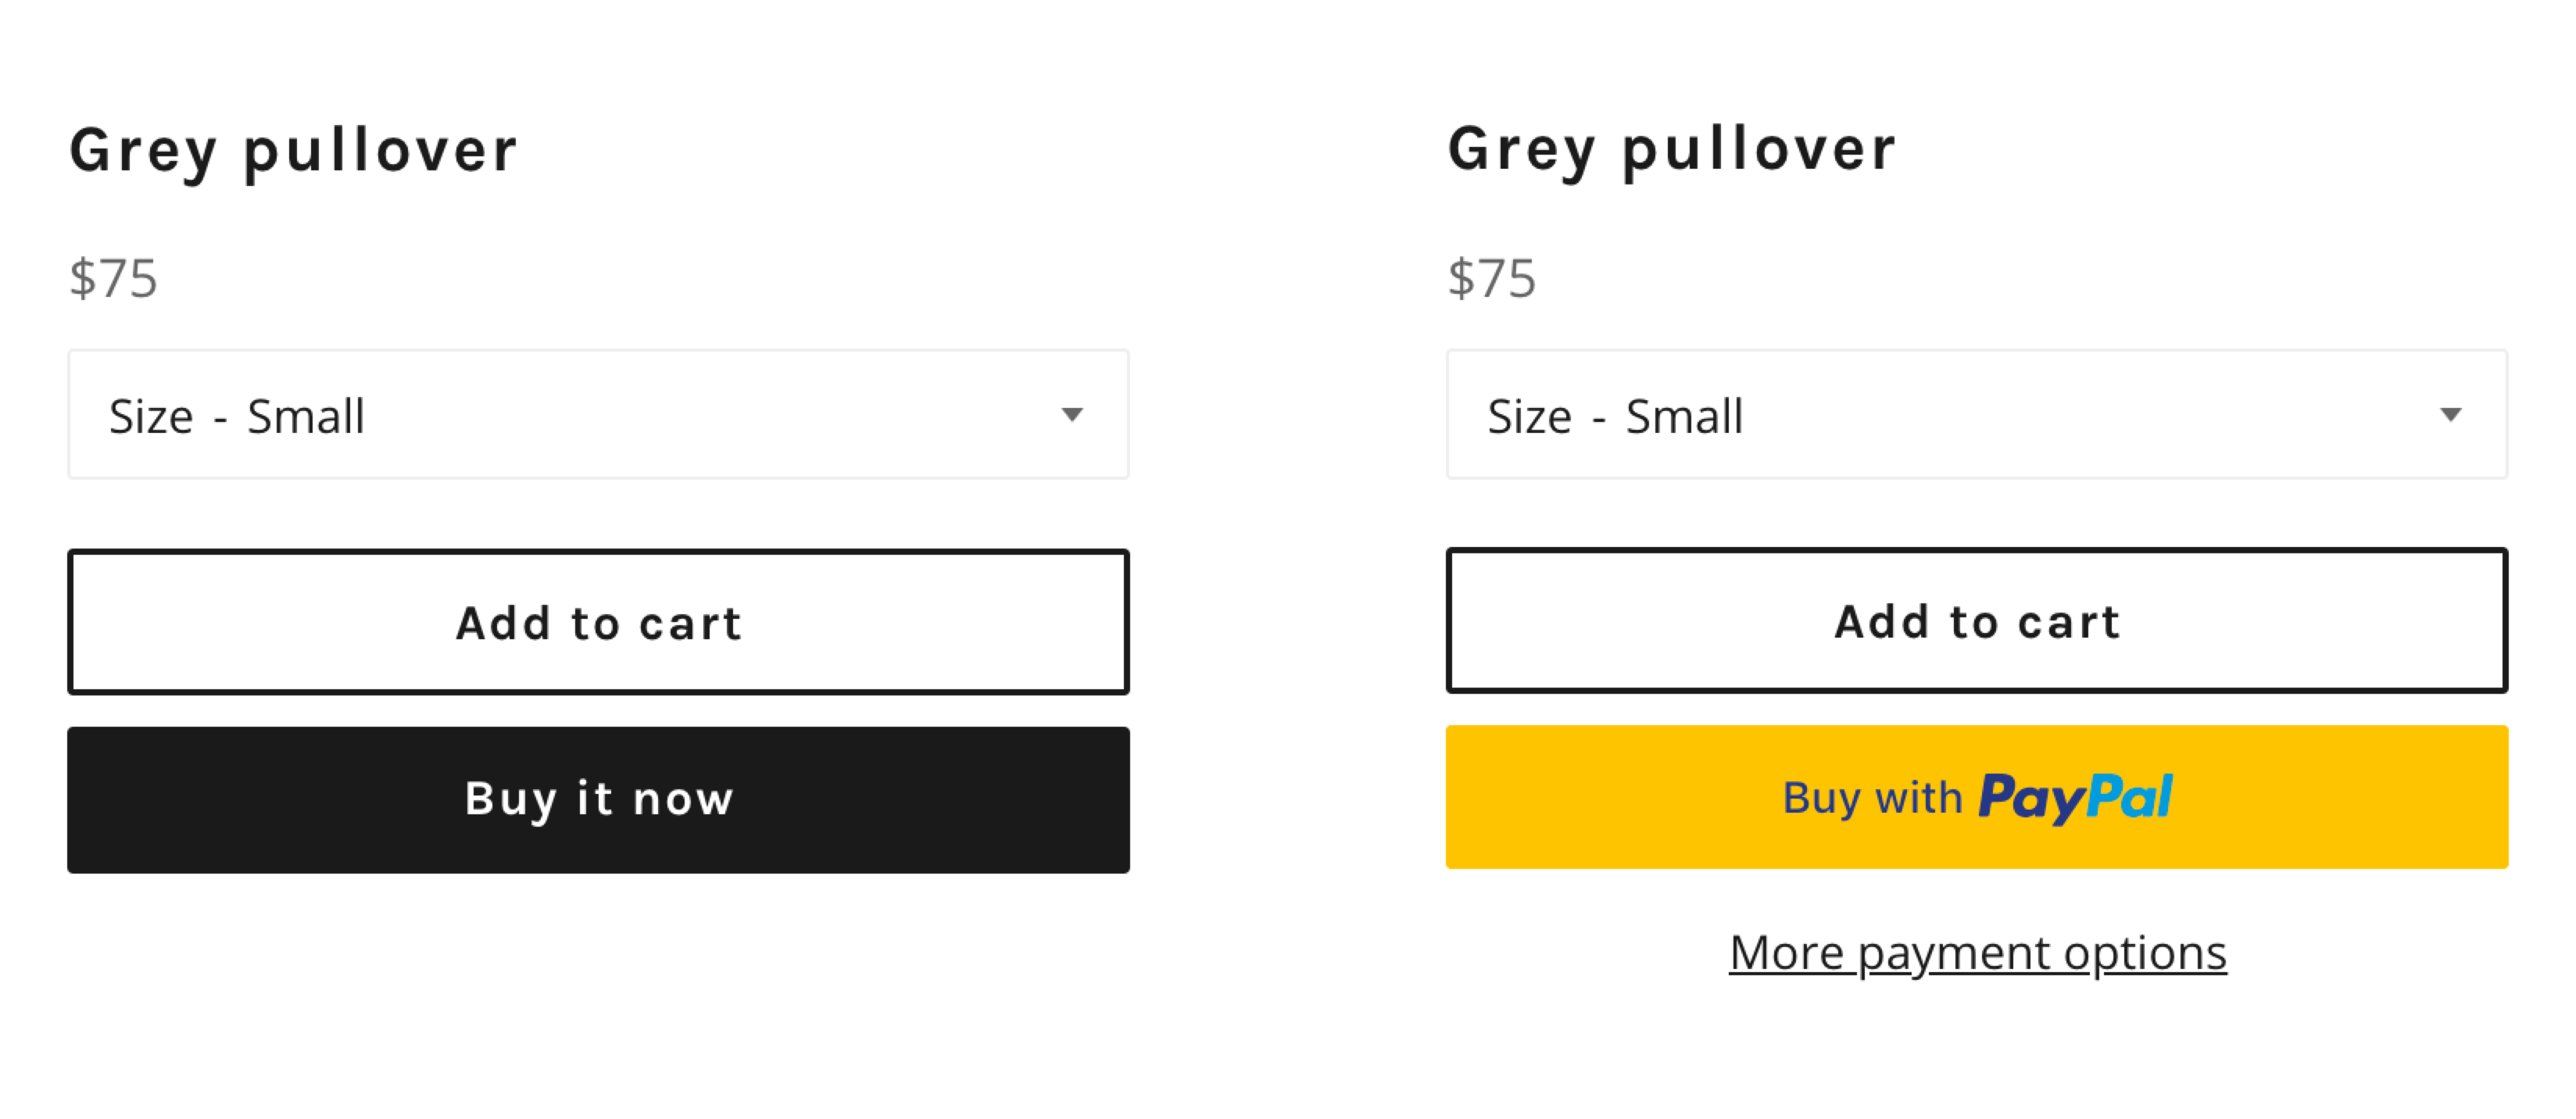 Two example product pages showing dynamic checkout buttons. One page shows an unbranded button with Buy it now text. The other page shows a branded button with Buy with PayPal text.